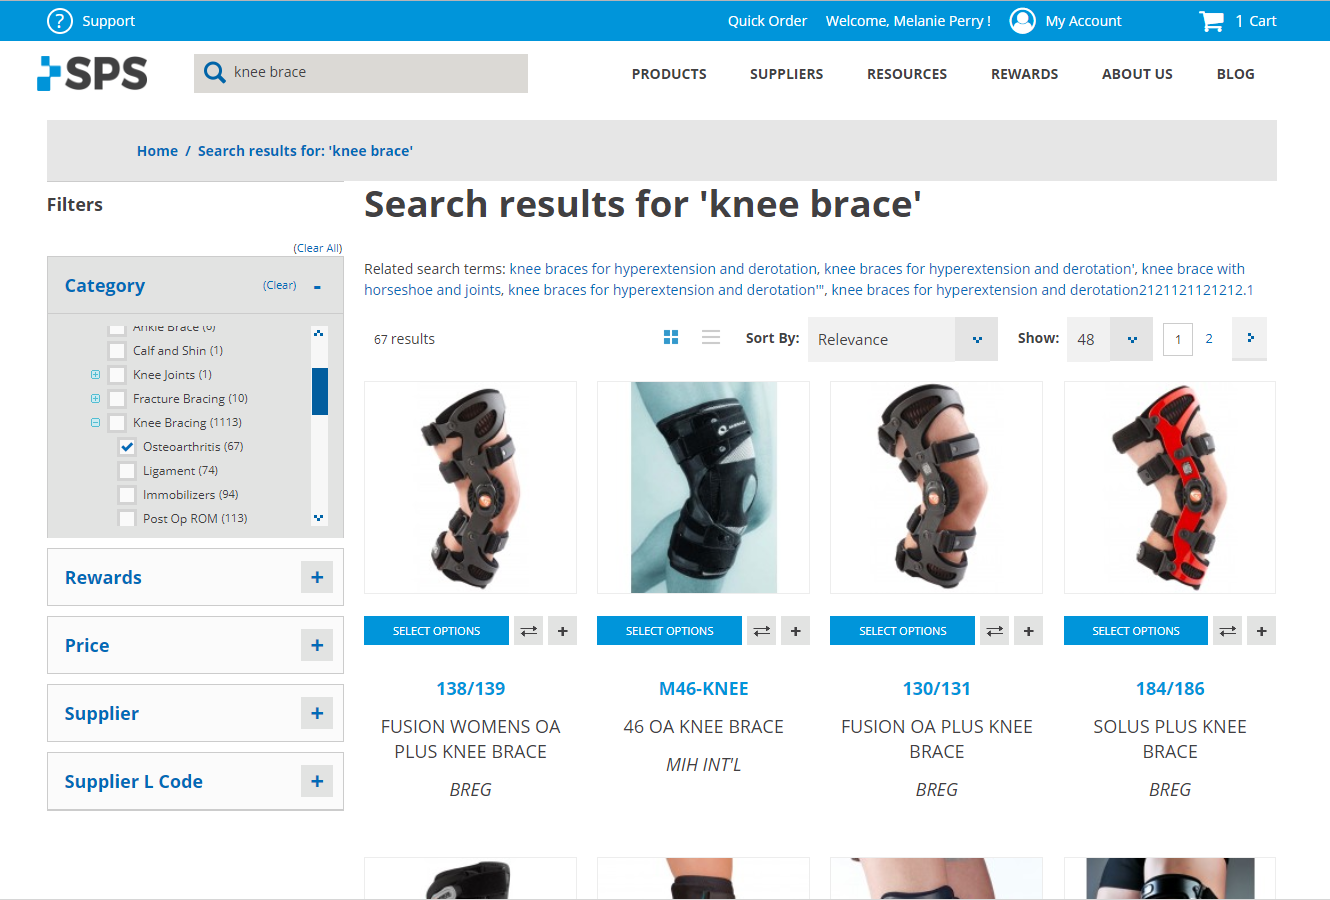 knee brace sort by cat - OA